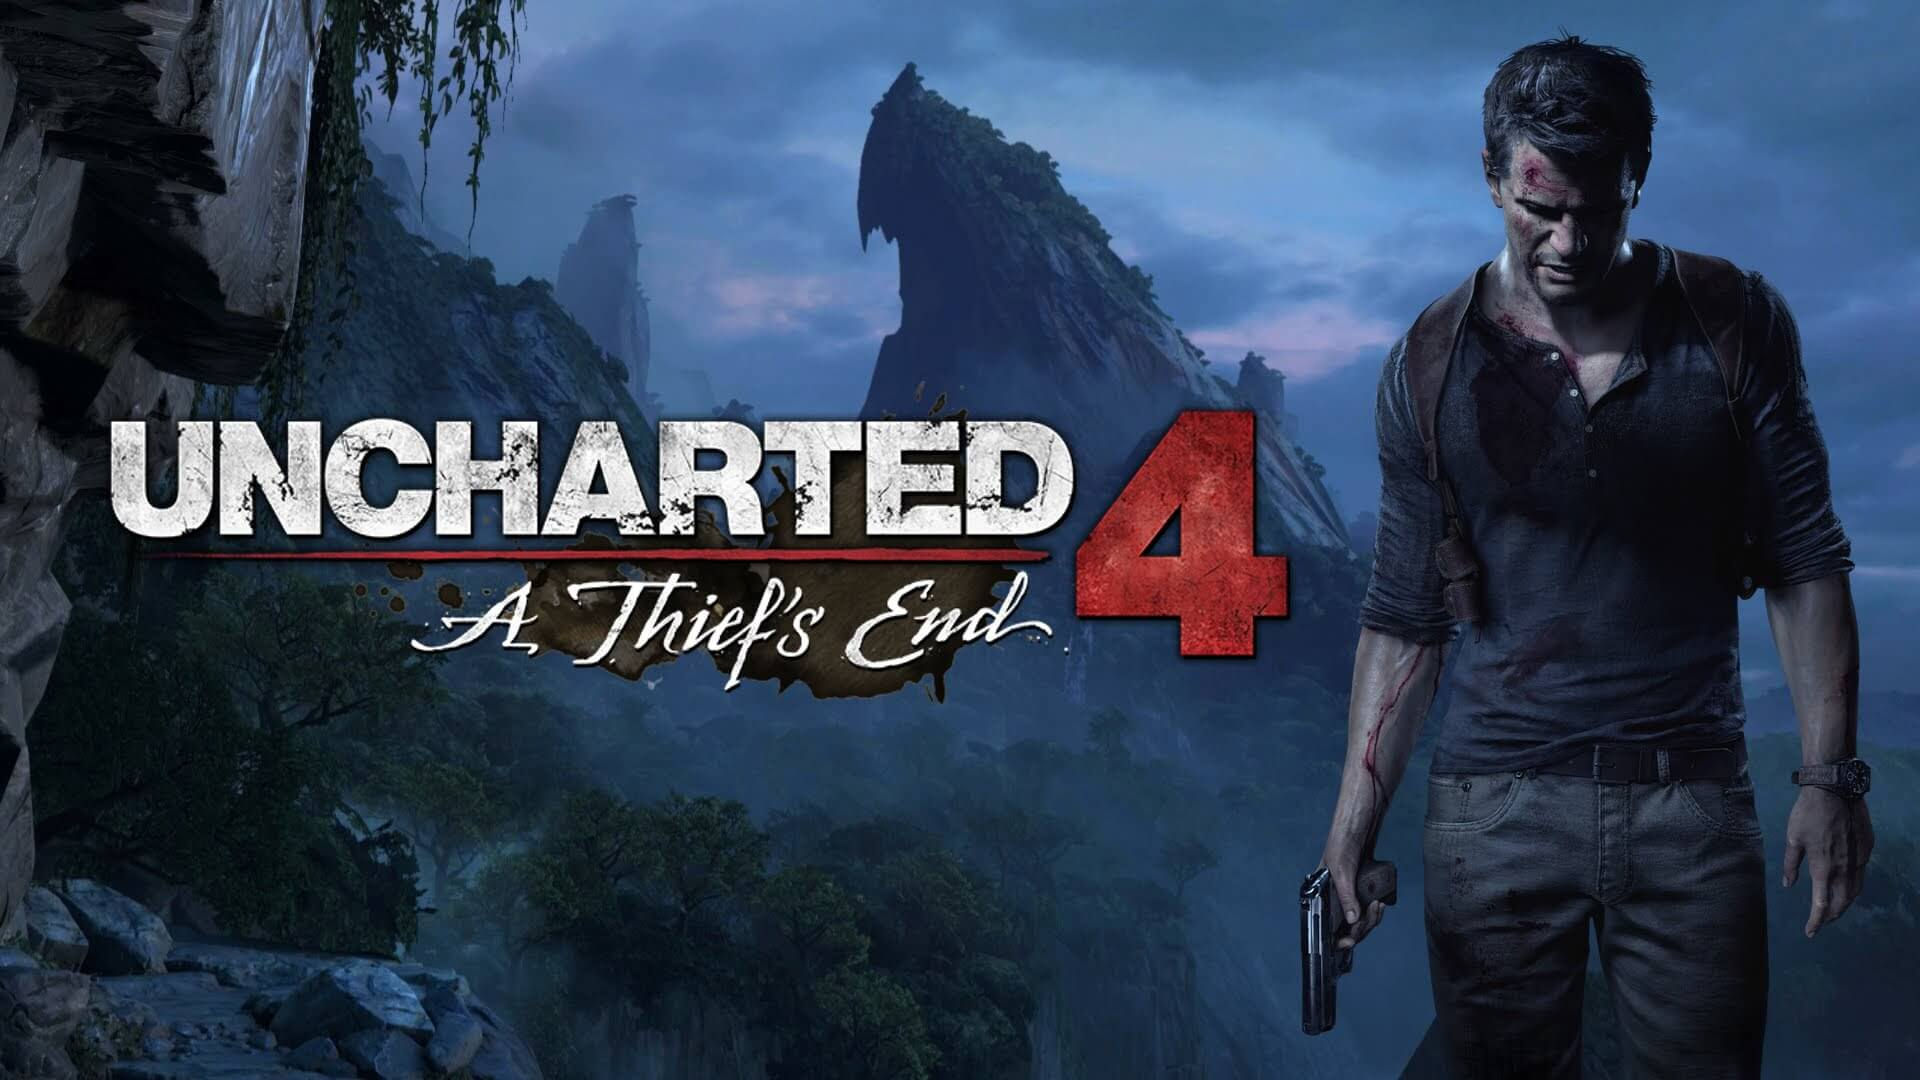 Uncharted 4 Open Multiplayer Beta Starts March 4